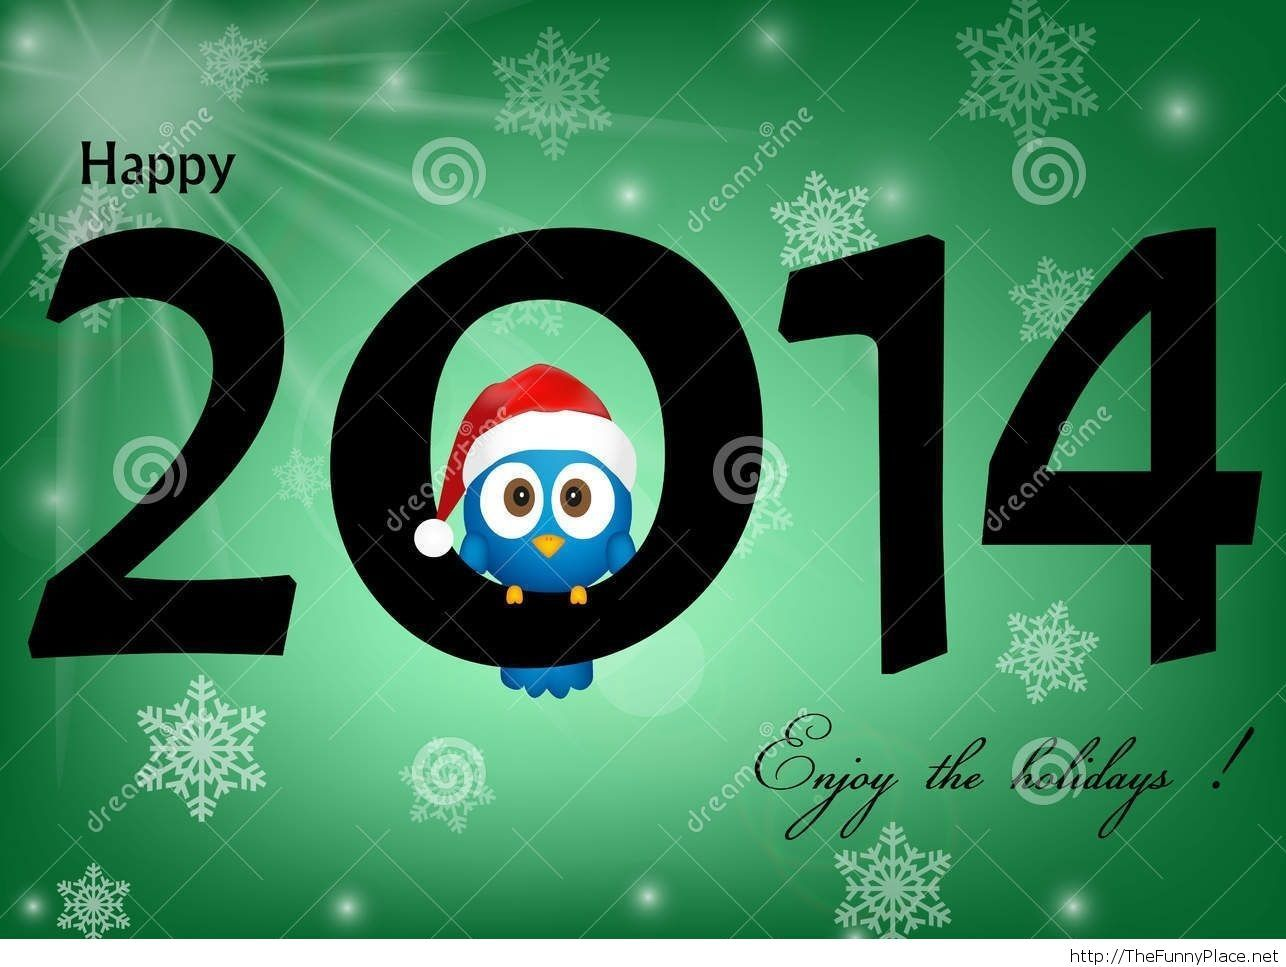 Happy 2014 to all!